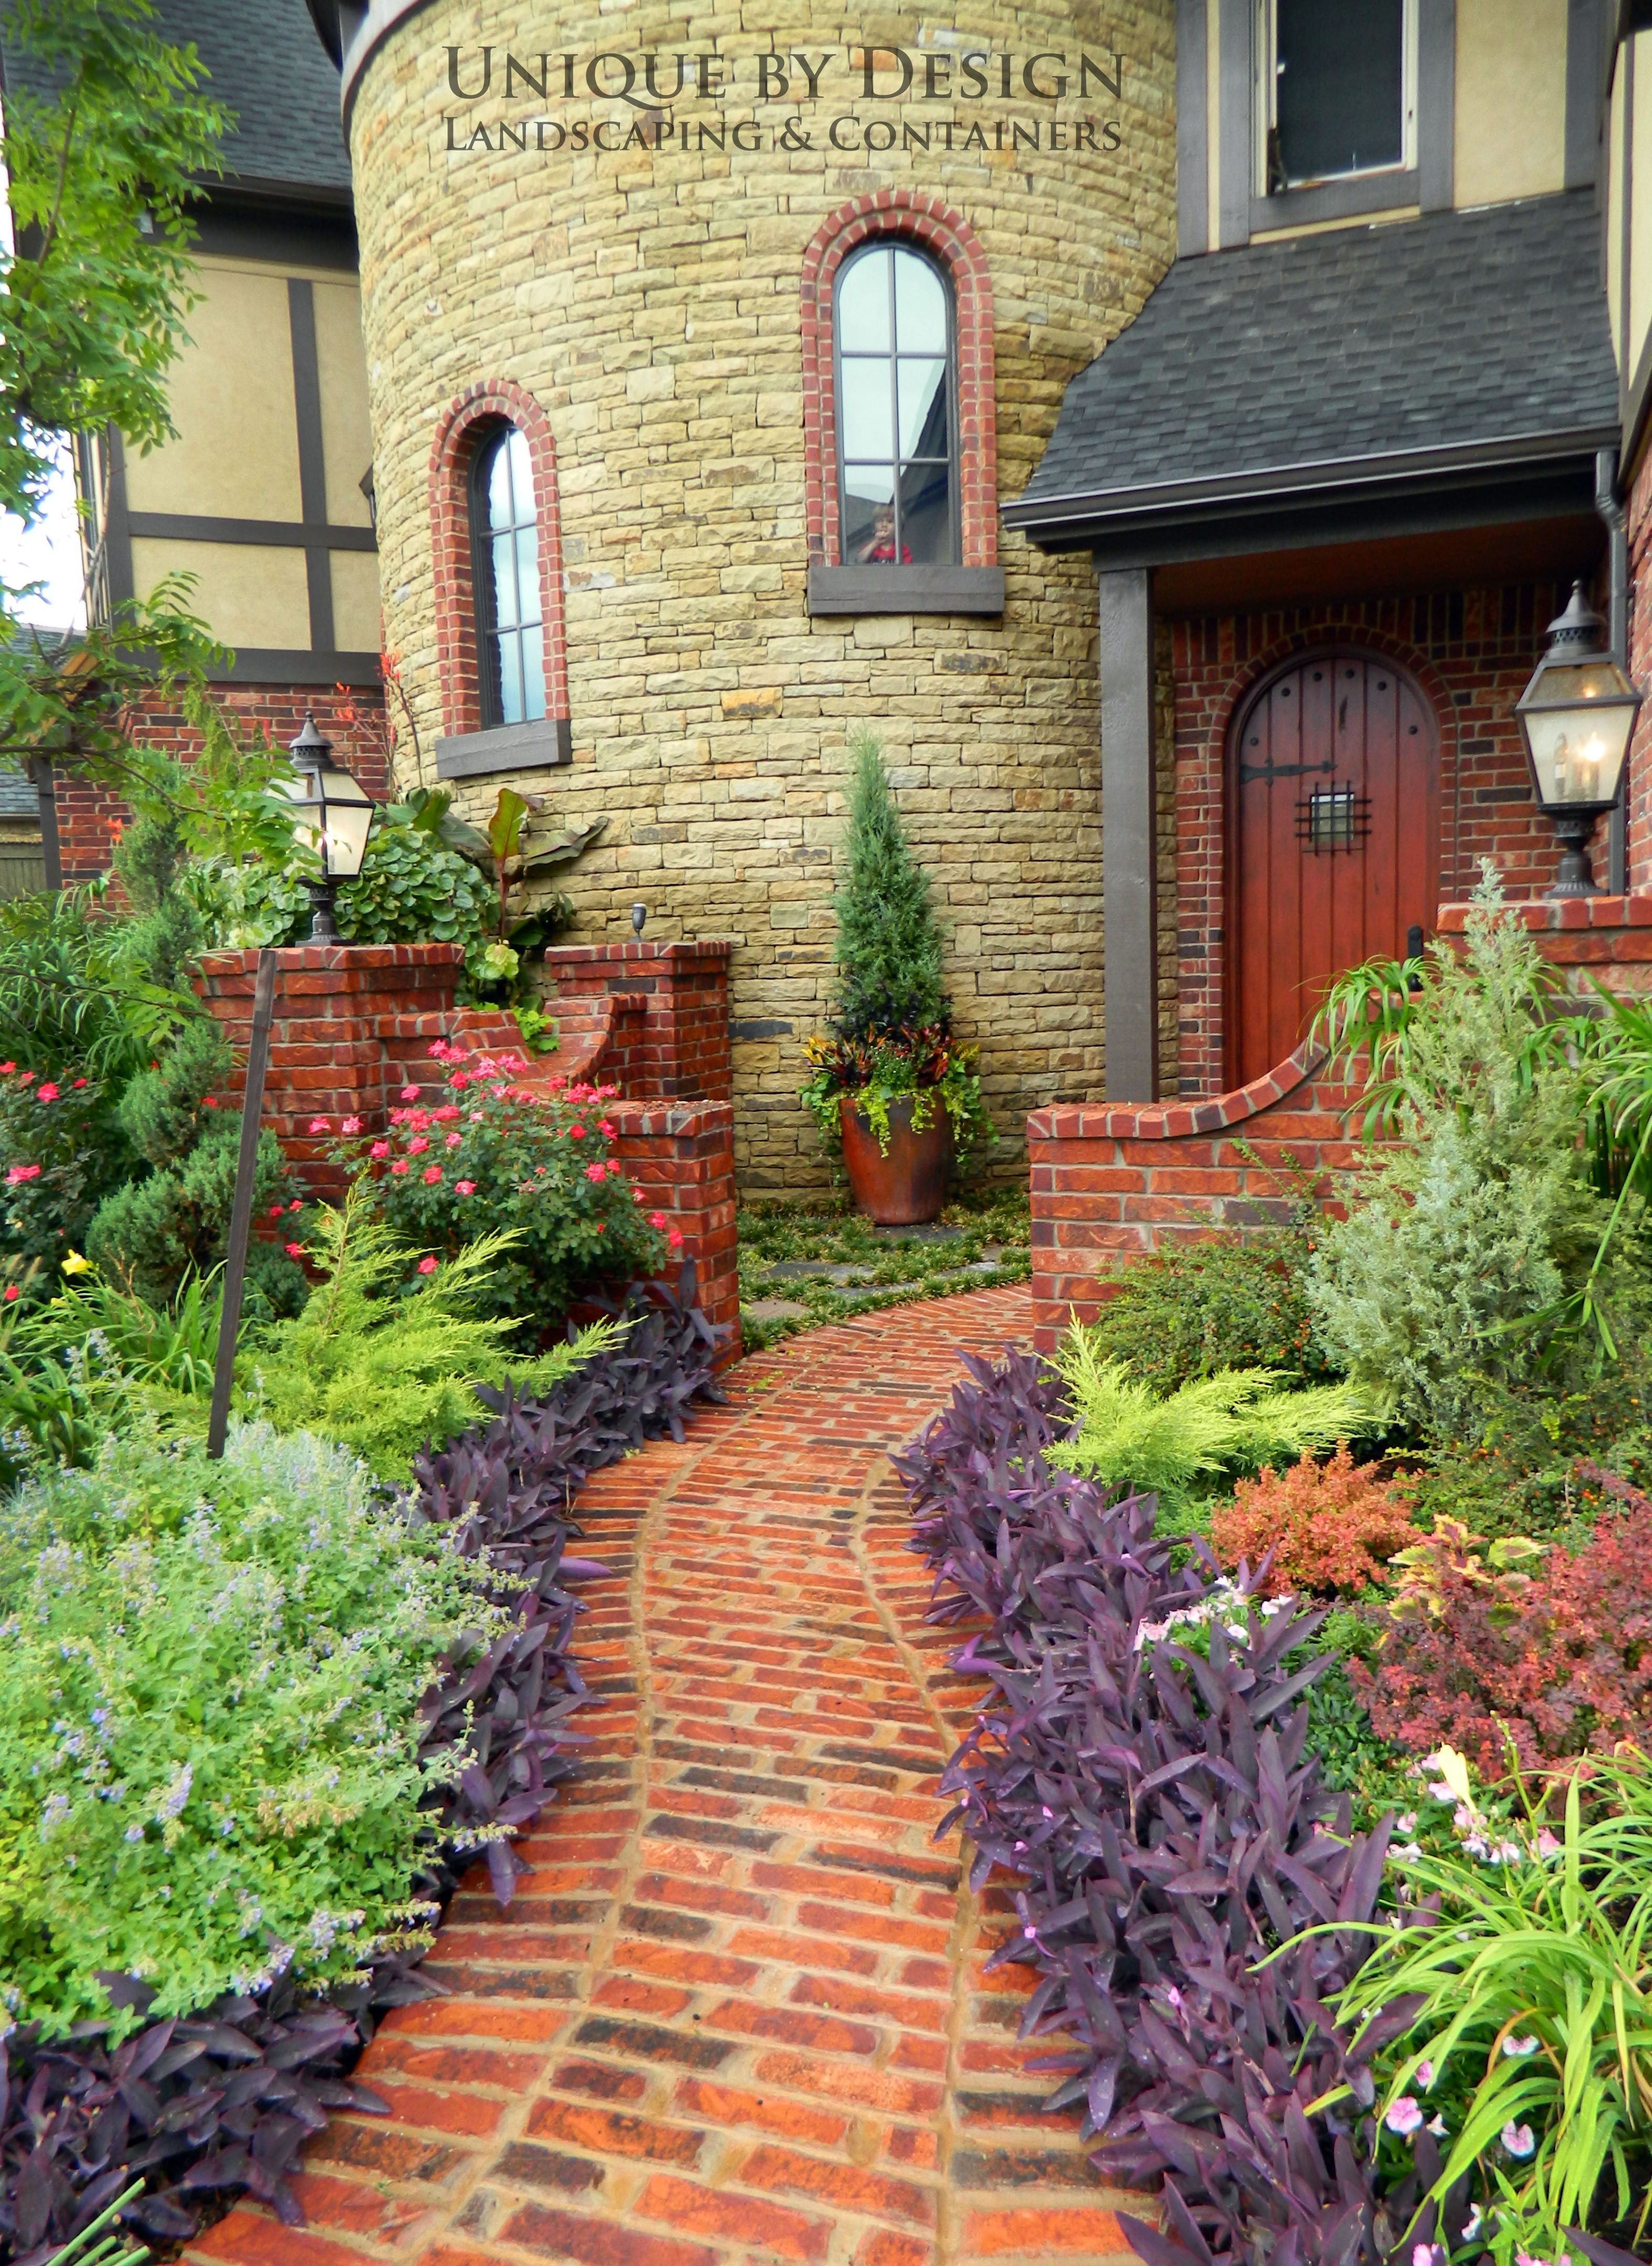 This Could Be Duplicated Even In The Harsh Hot Summer We Have In Texas Purple Heart Salvia Mexican Heather Stone Garden Paths Landscape Design Garden Paths